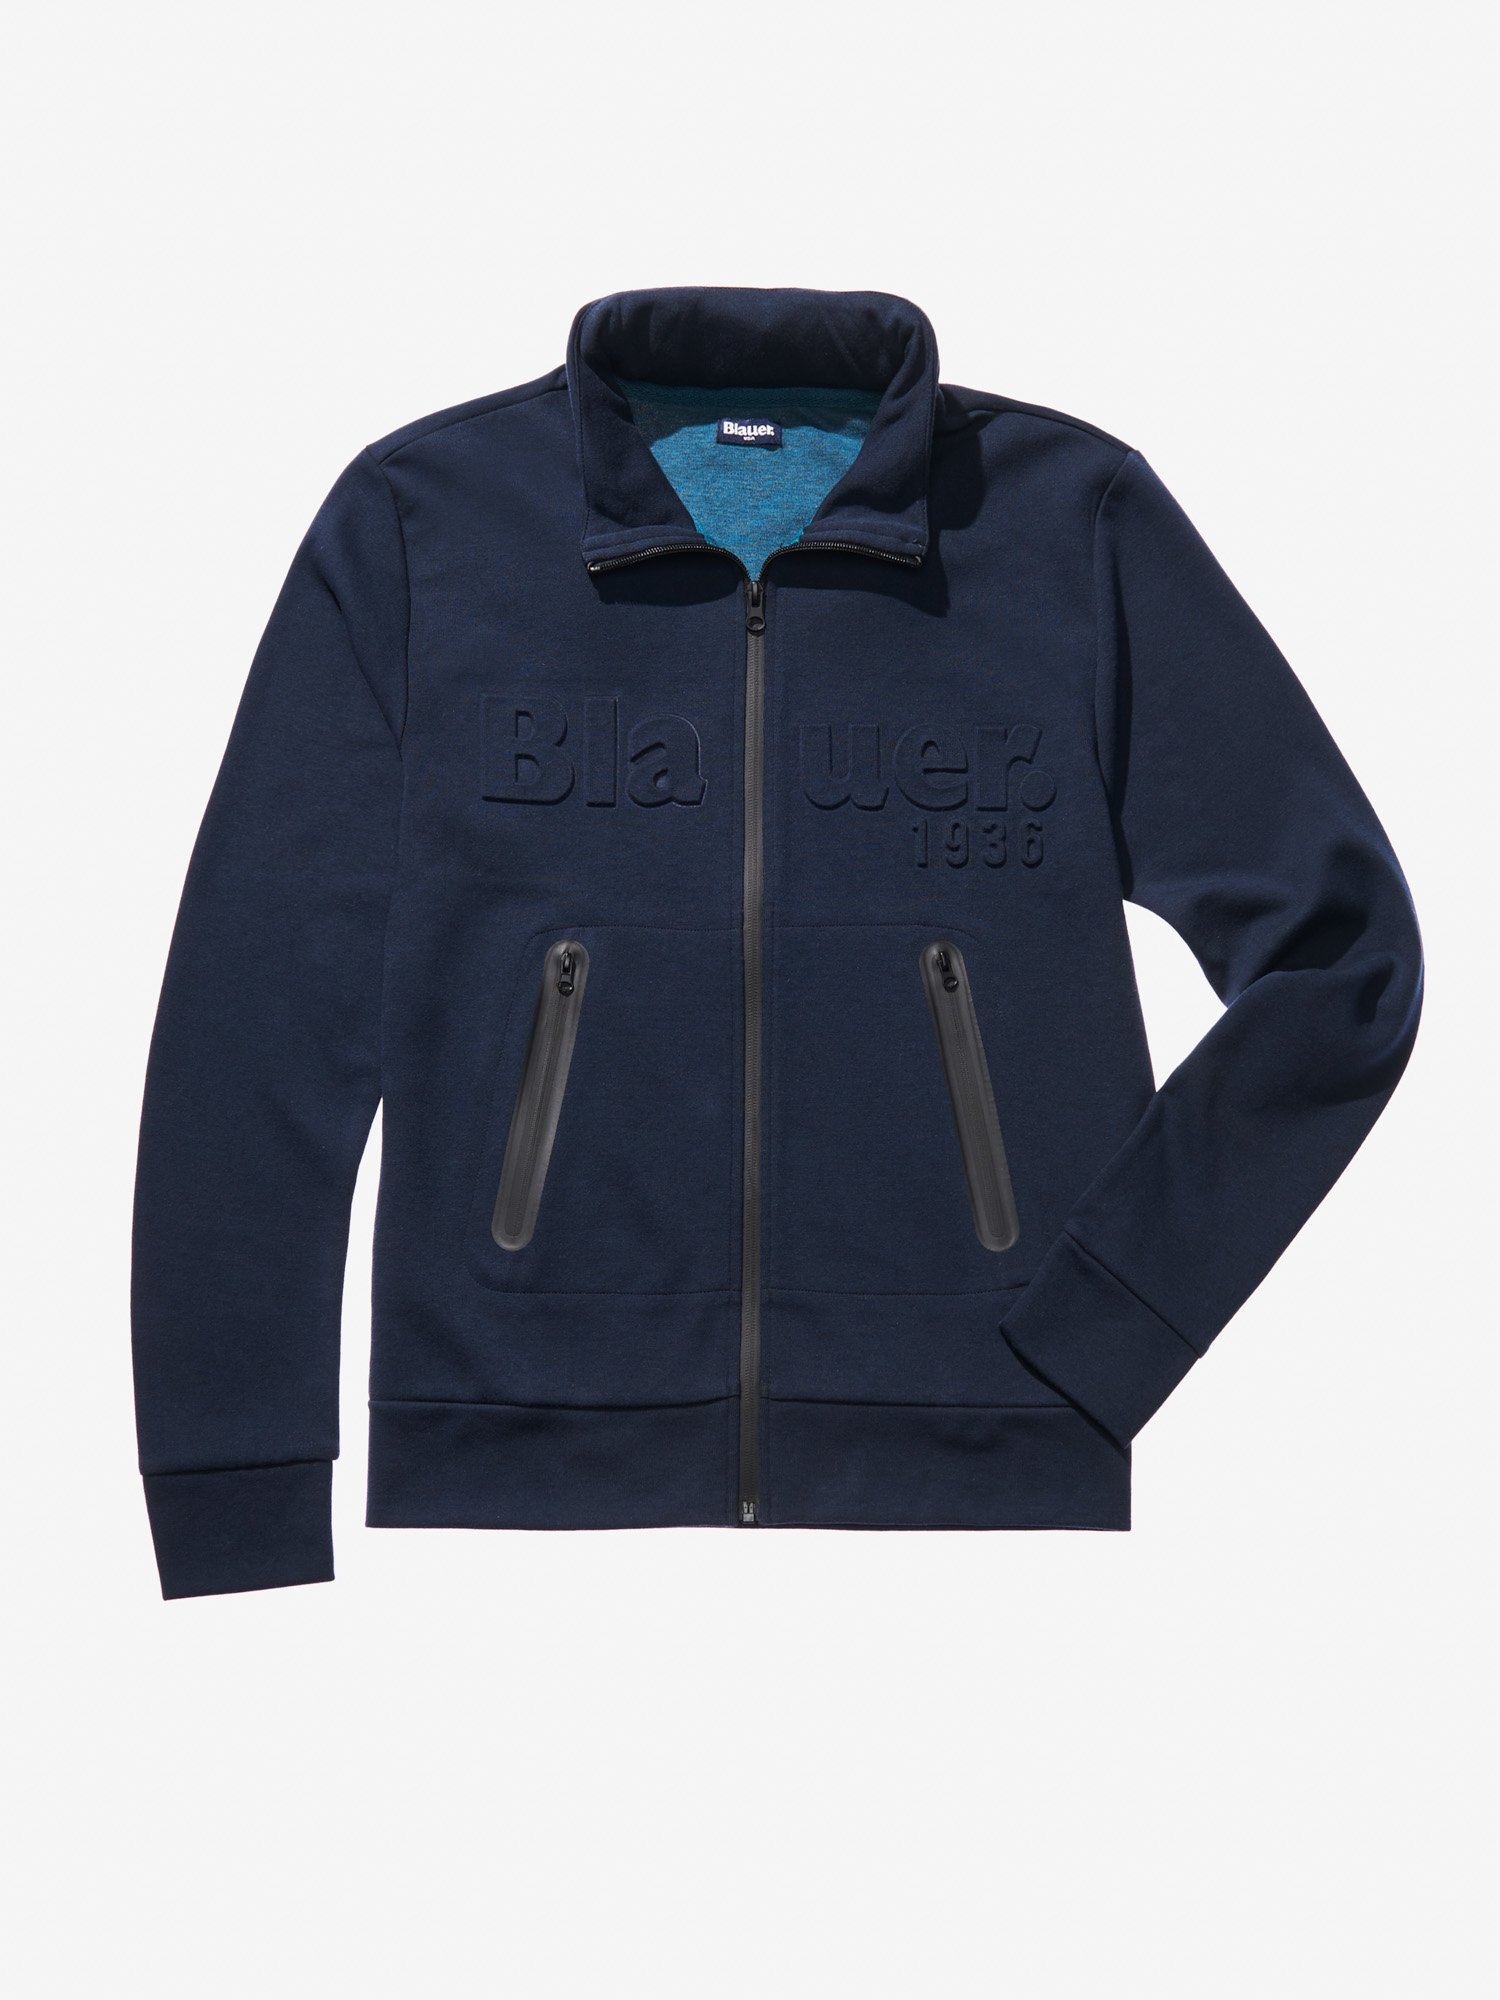 OPEN SWEATSHIRT WITH COATED ZIP - Blauer